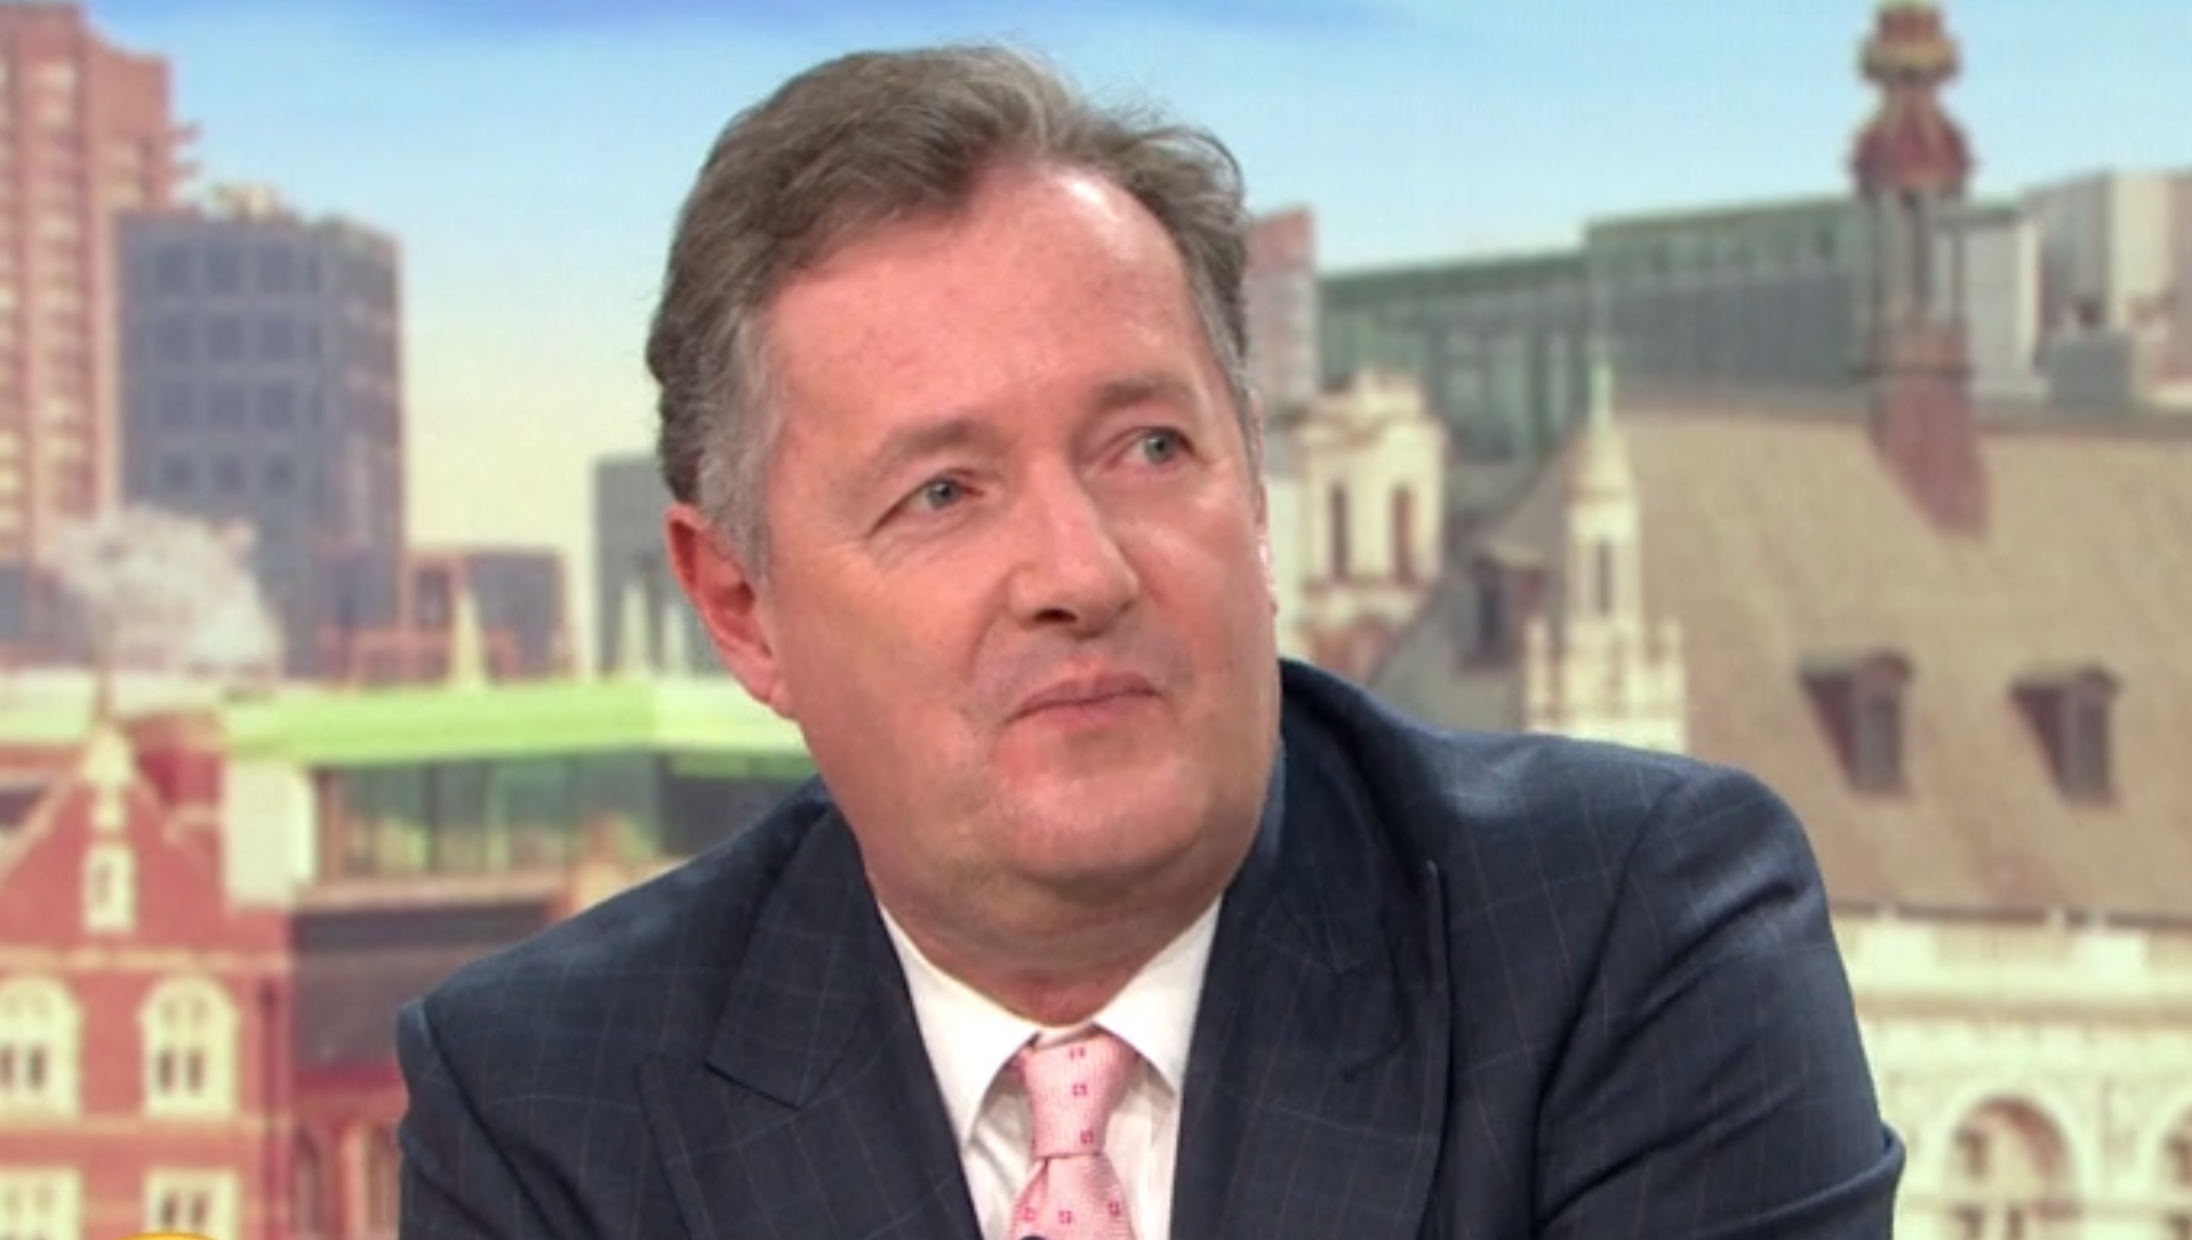 Piers Morgan demands apology from GMB co-star as he gets 'fat-shamed'